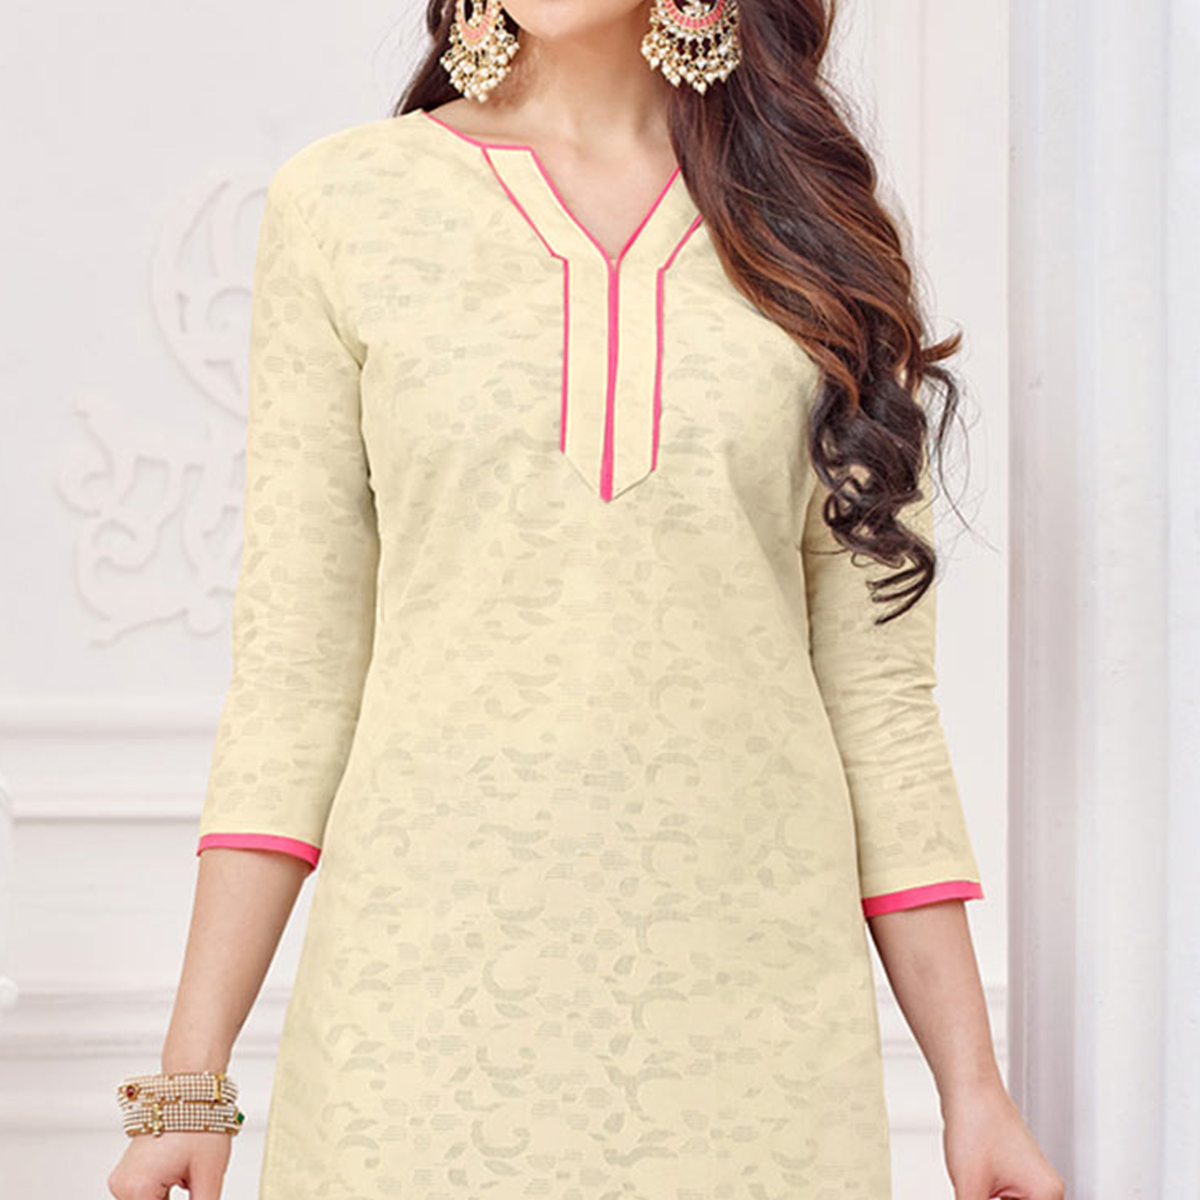 Off-White-Pink Partywear Embroidered Bombay Jacquard Salwar Suit